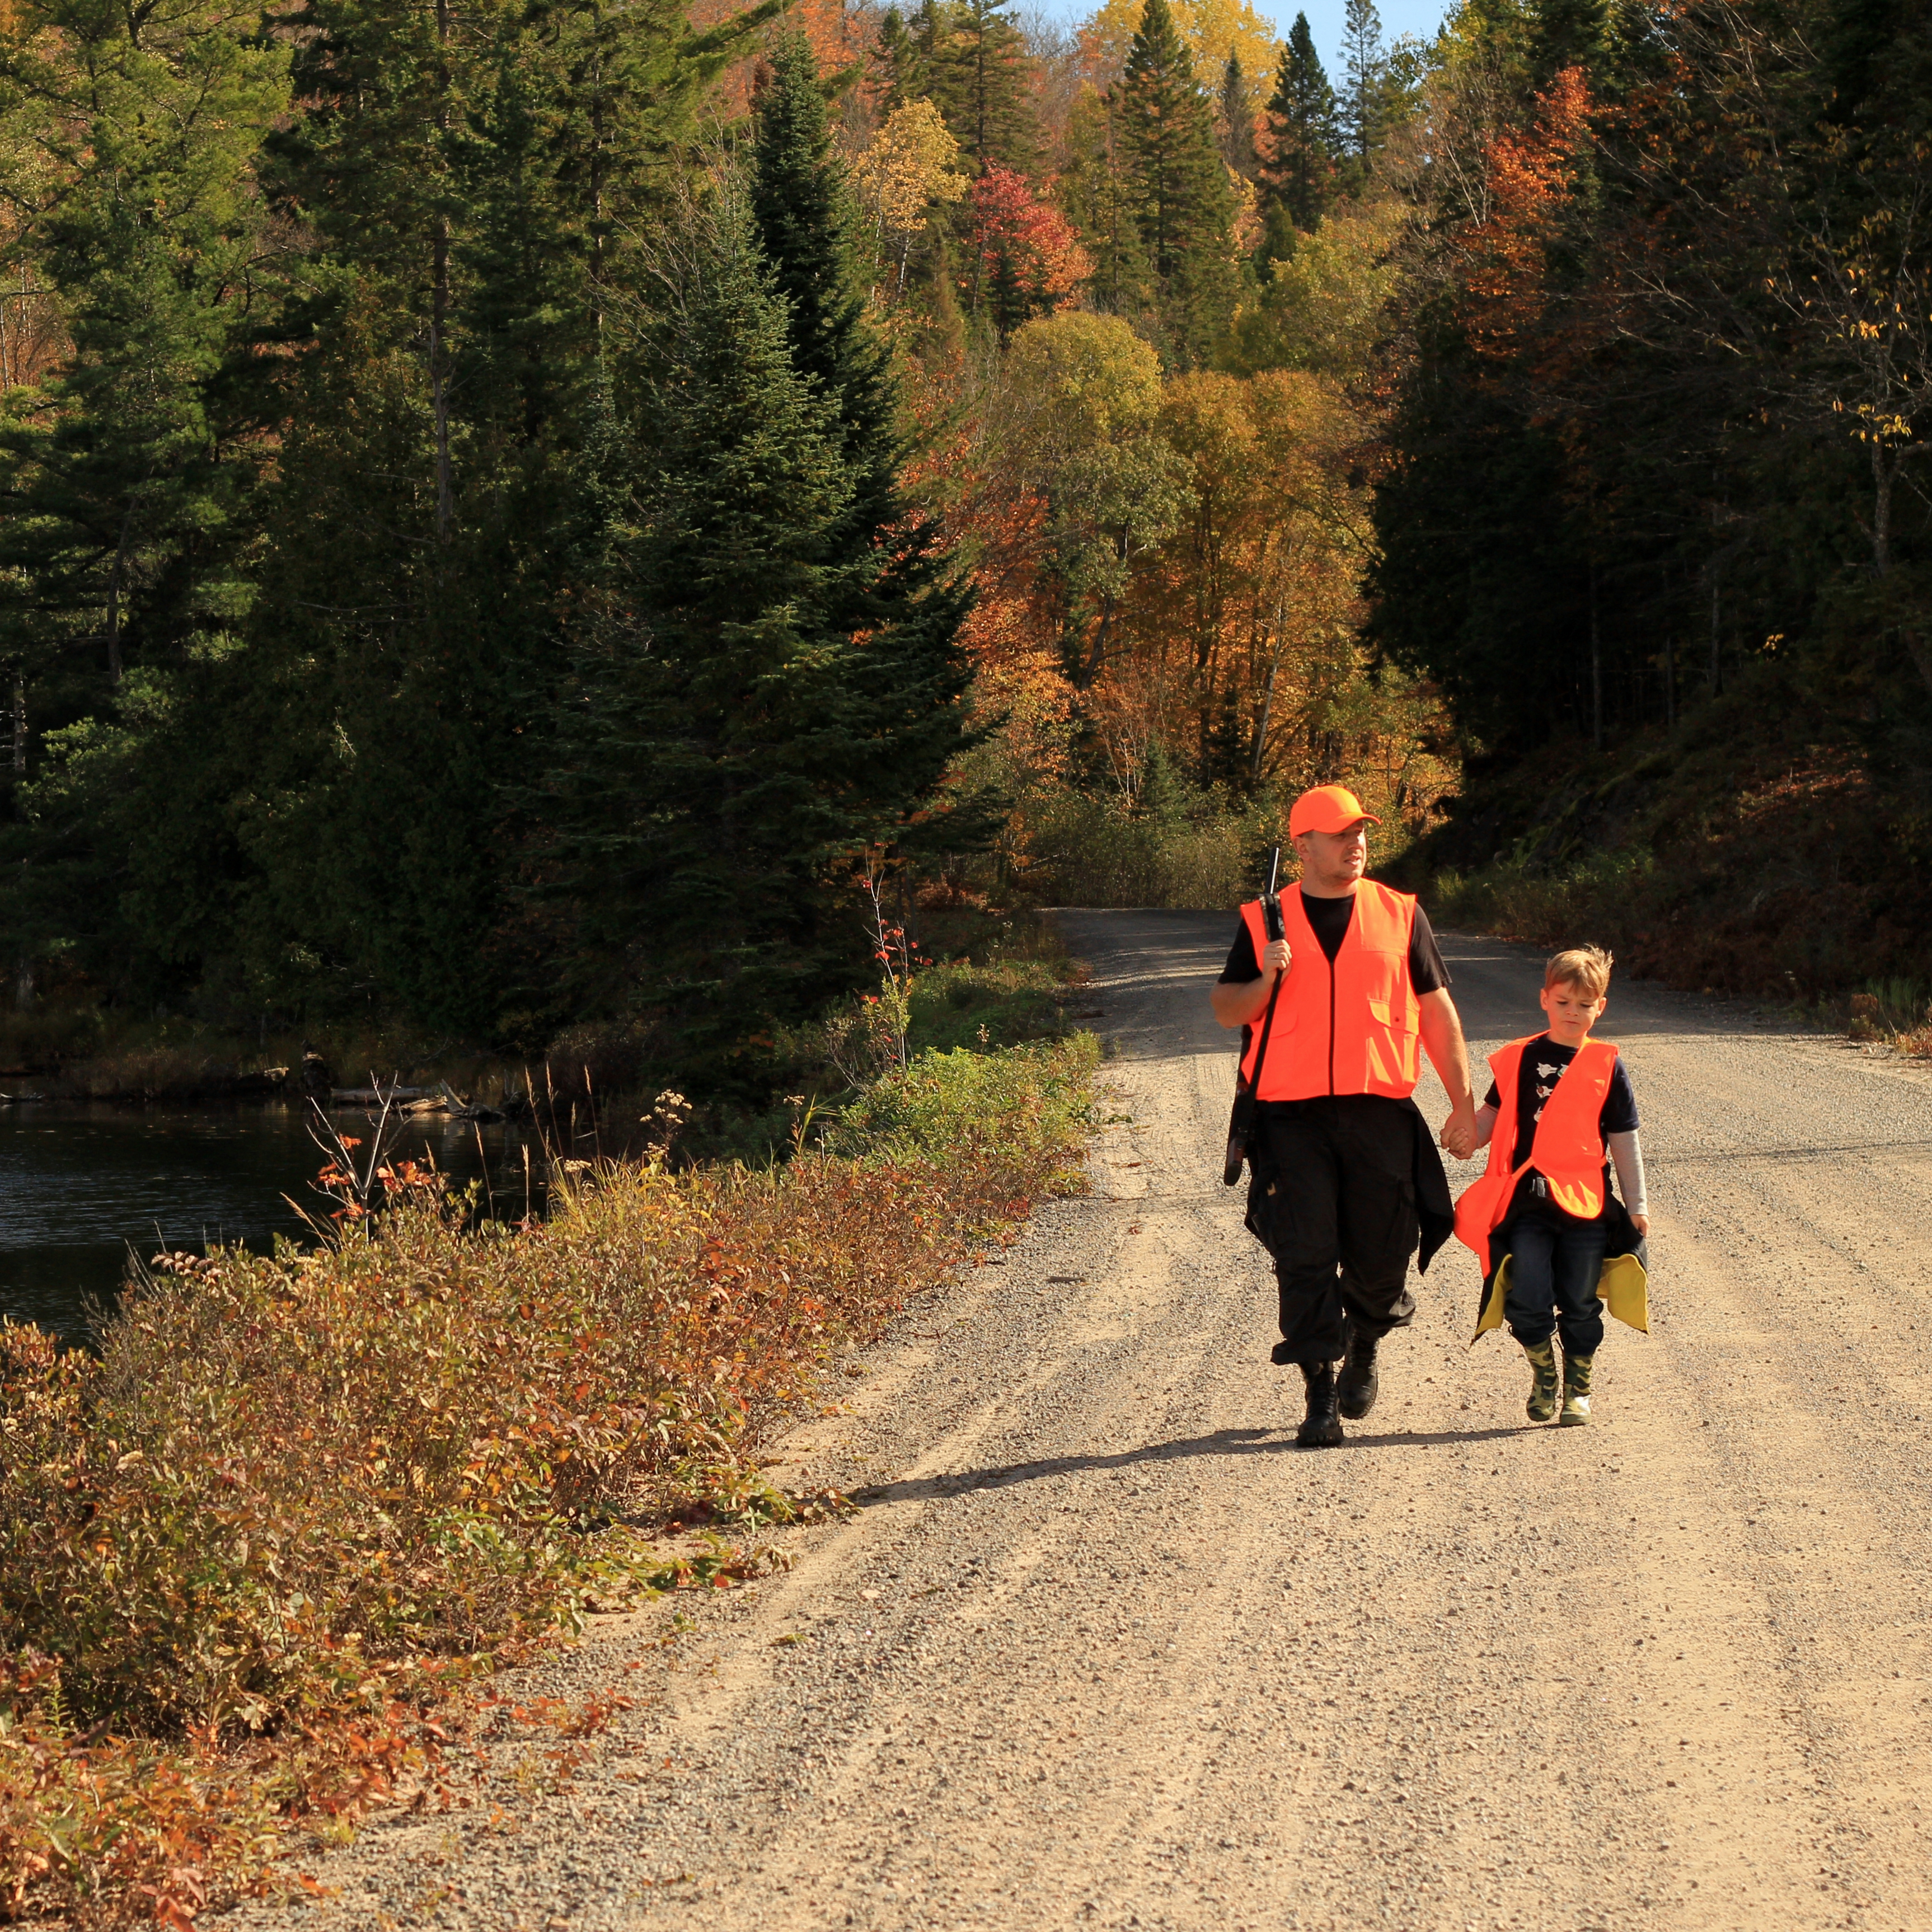 an adult male hunter with an orange hunting vest and a gun, walking on a wooded, gravel road holding a young boy's hand who is also wearing an orange safety vest